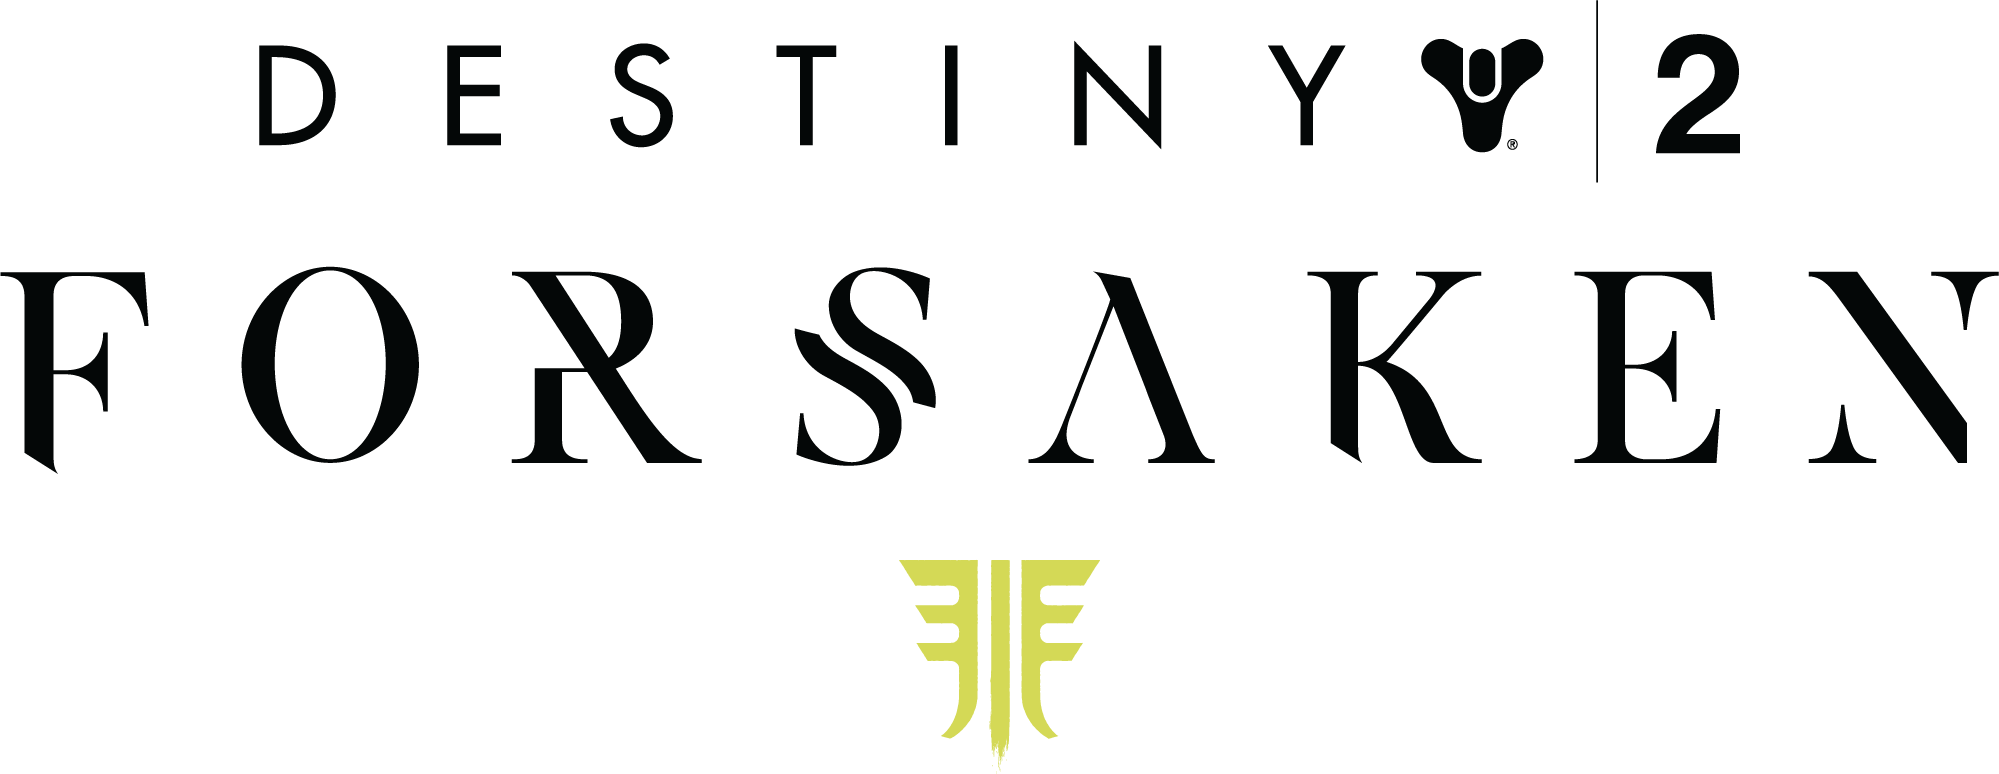 Destiny 2 beta png. Forsaken takes players to